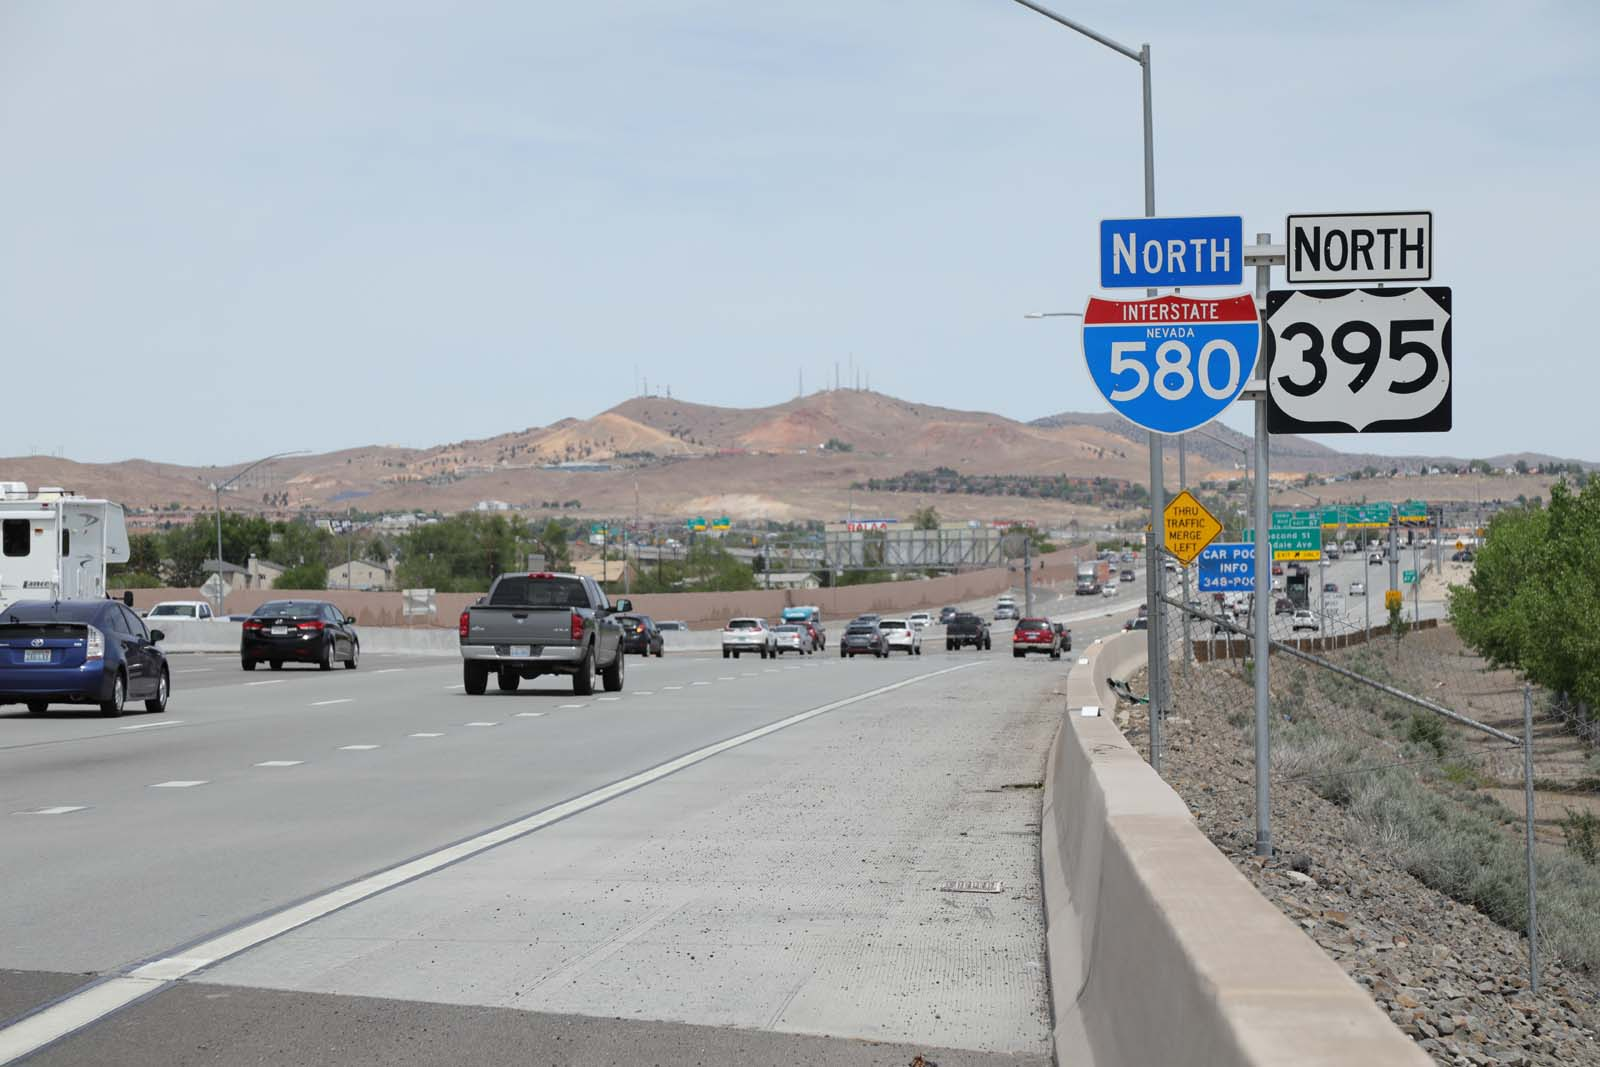 Sections of aging concrete will be replaced on I-580 and U.S. 395 from Second Street to North McCarran Boulevard near the Reno Spaghetti Bowl.